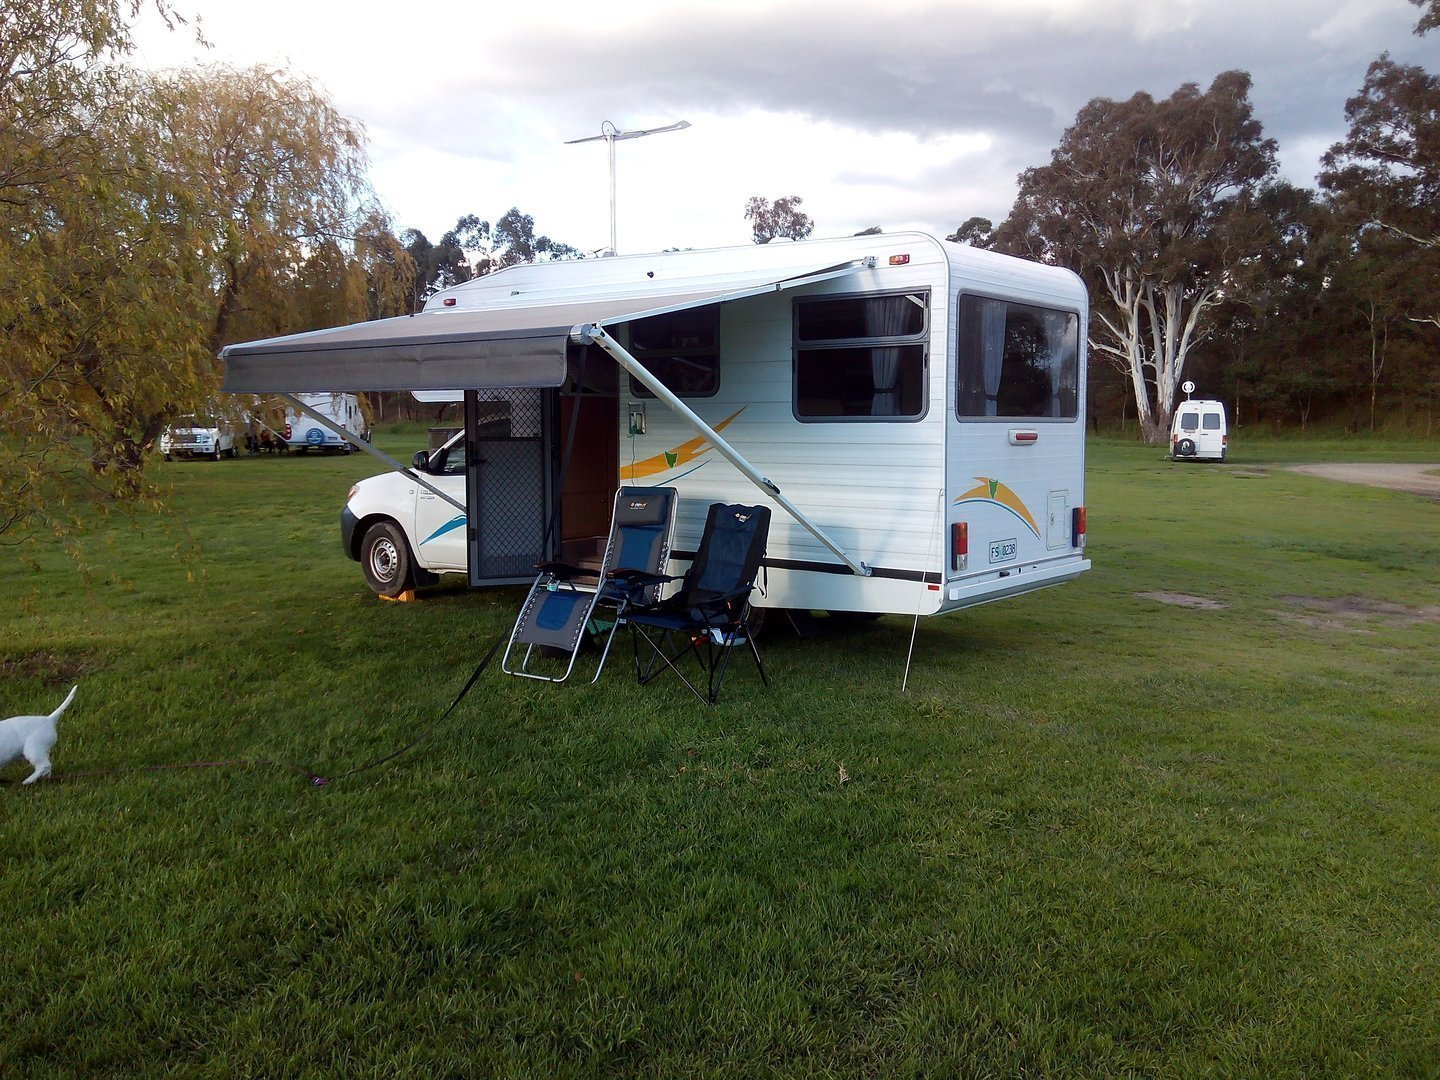 Superb Motorhome For Hire In New Town Tas From 150 0 Easy Drive Download Free Architecture Designs Scobabritishbridgeorg